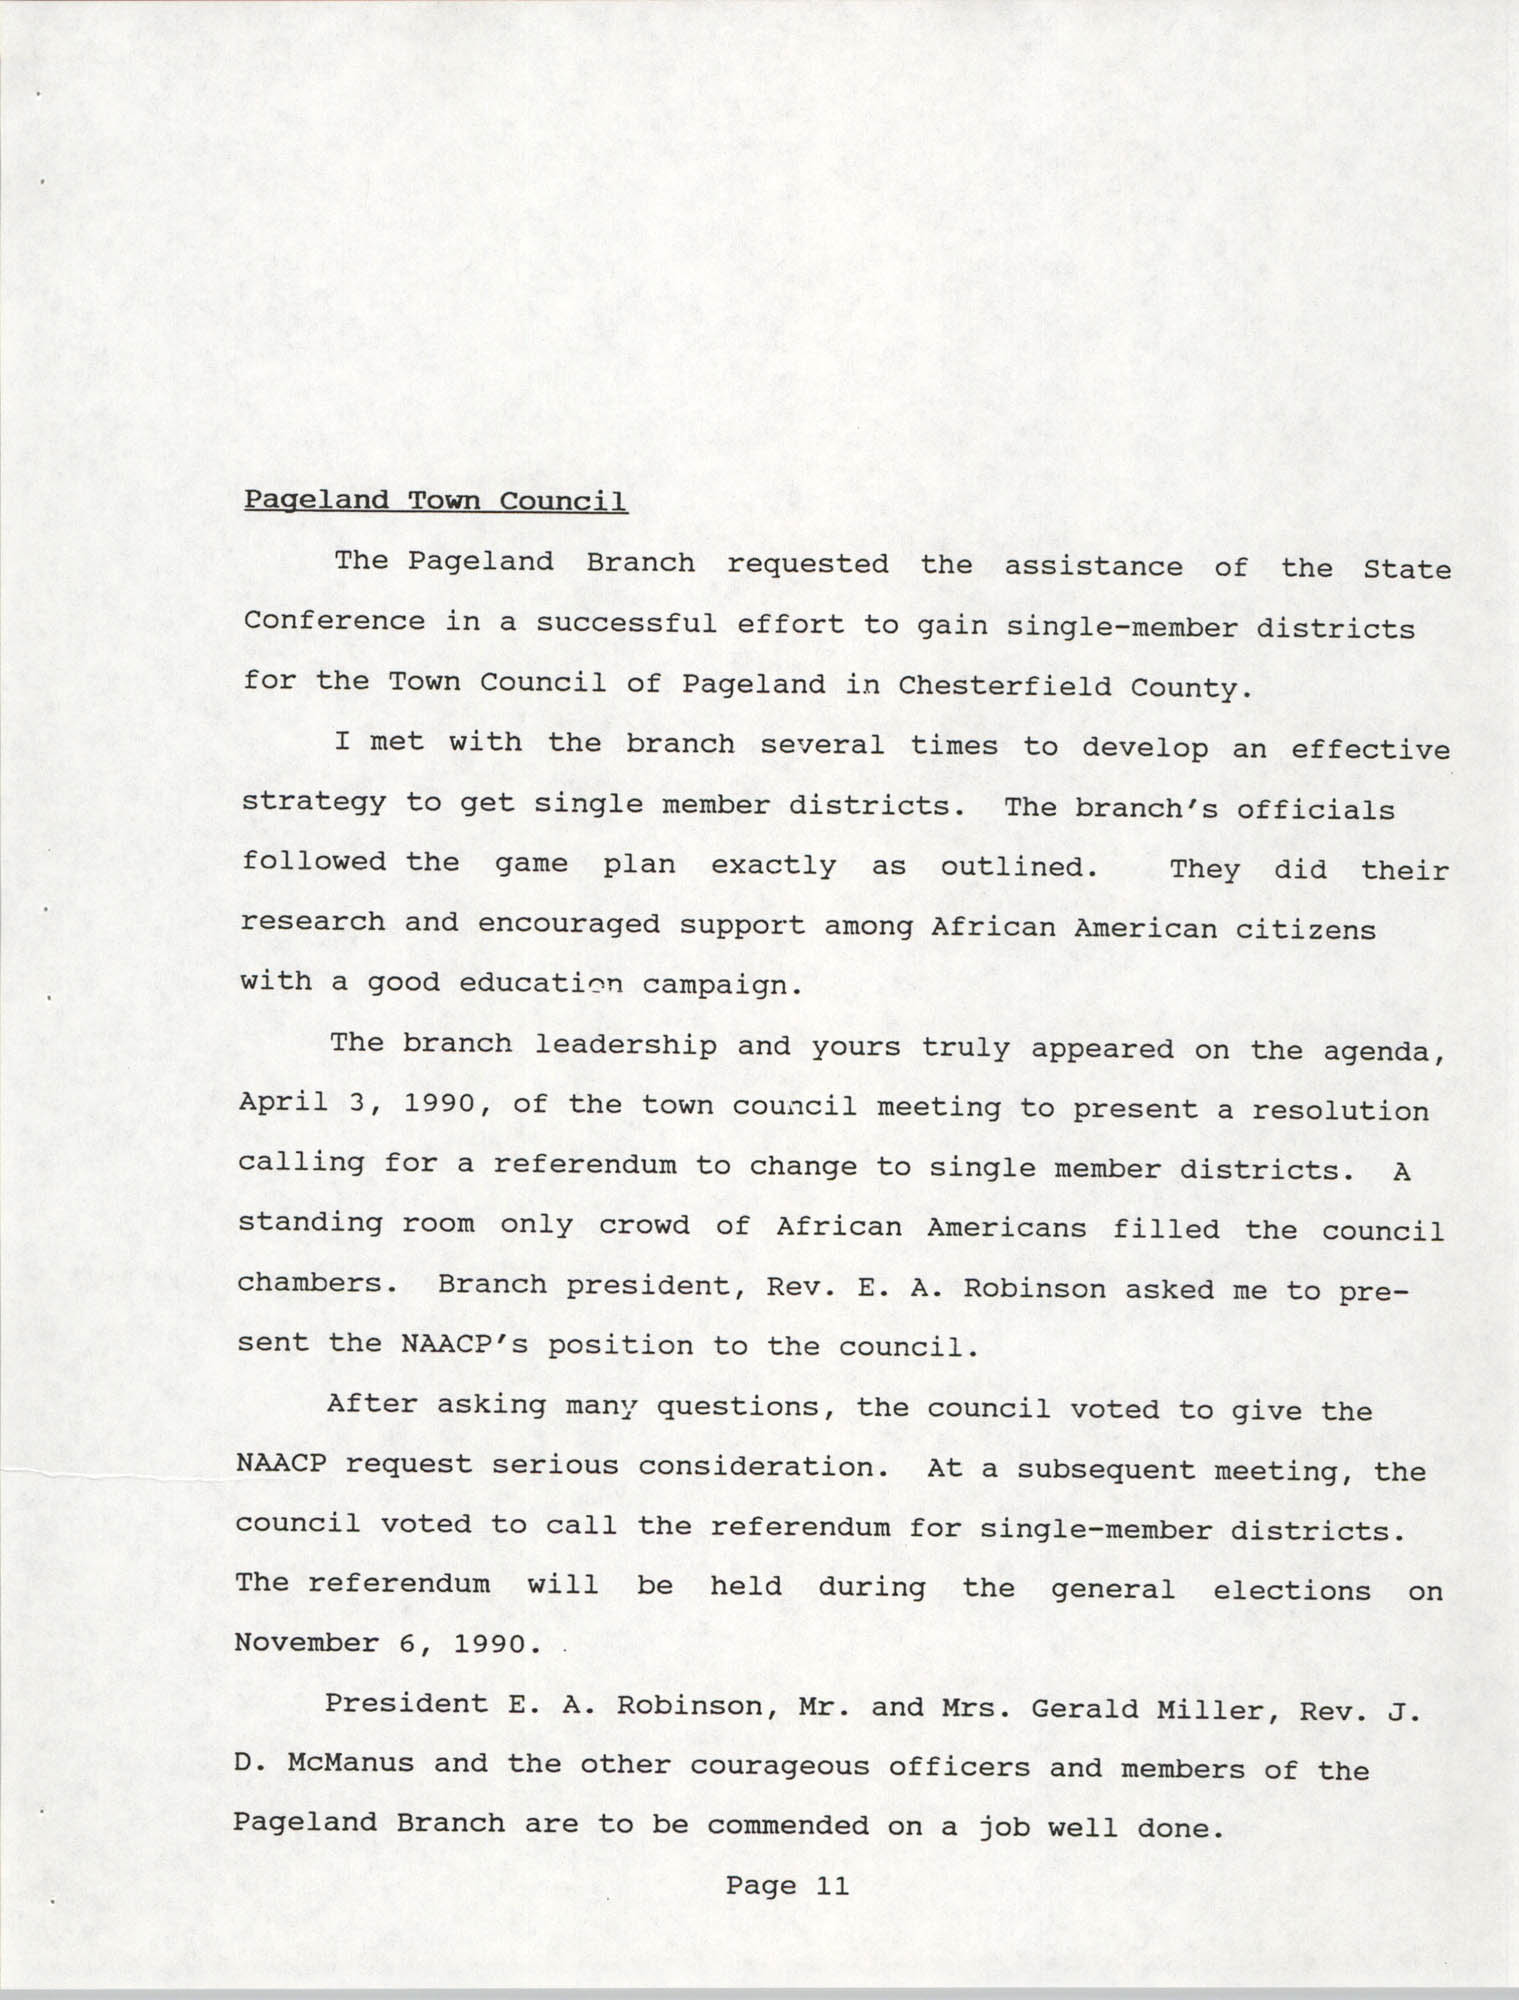 South Carolina Conference of Branches of the NAACP, 1990 Annual Report, Part One, Page 11